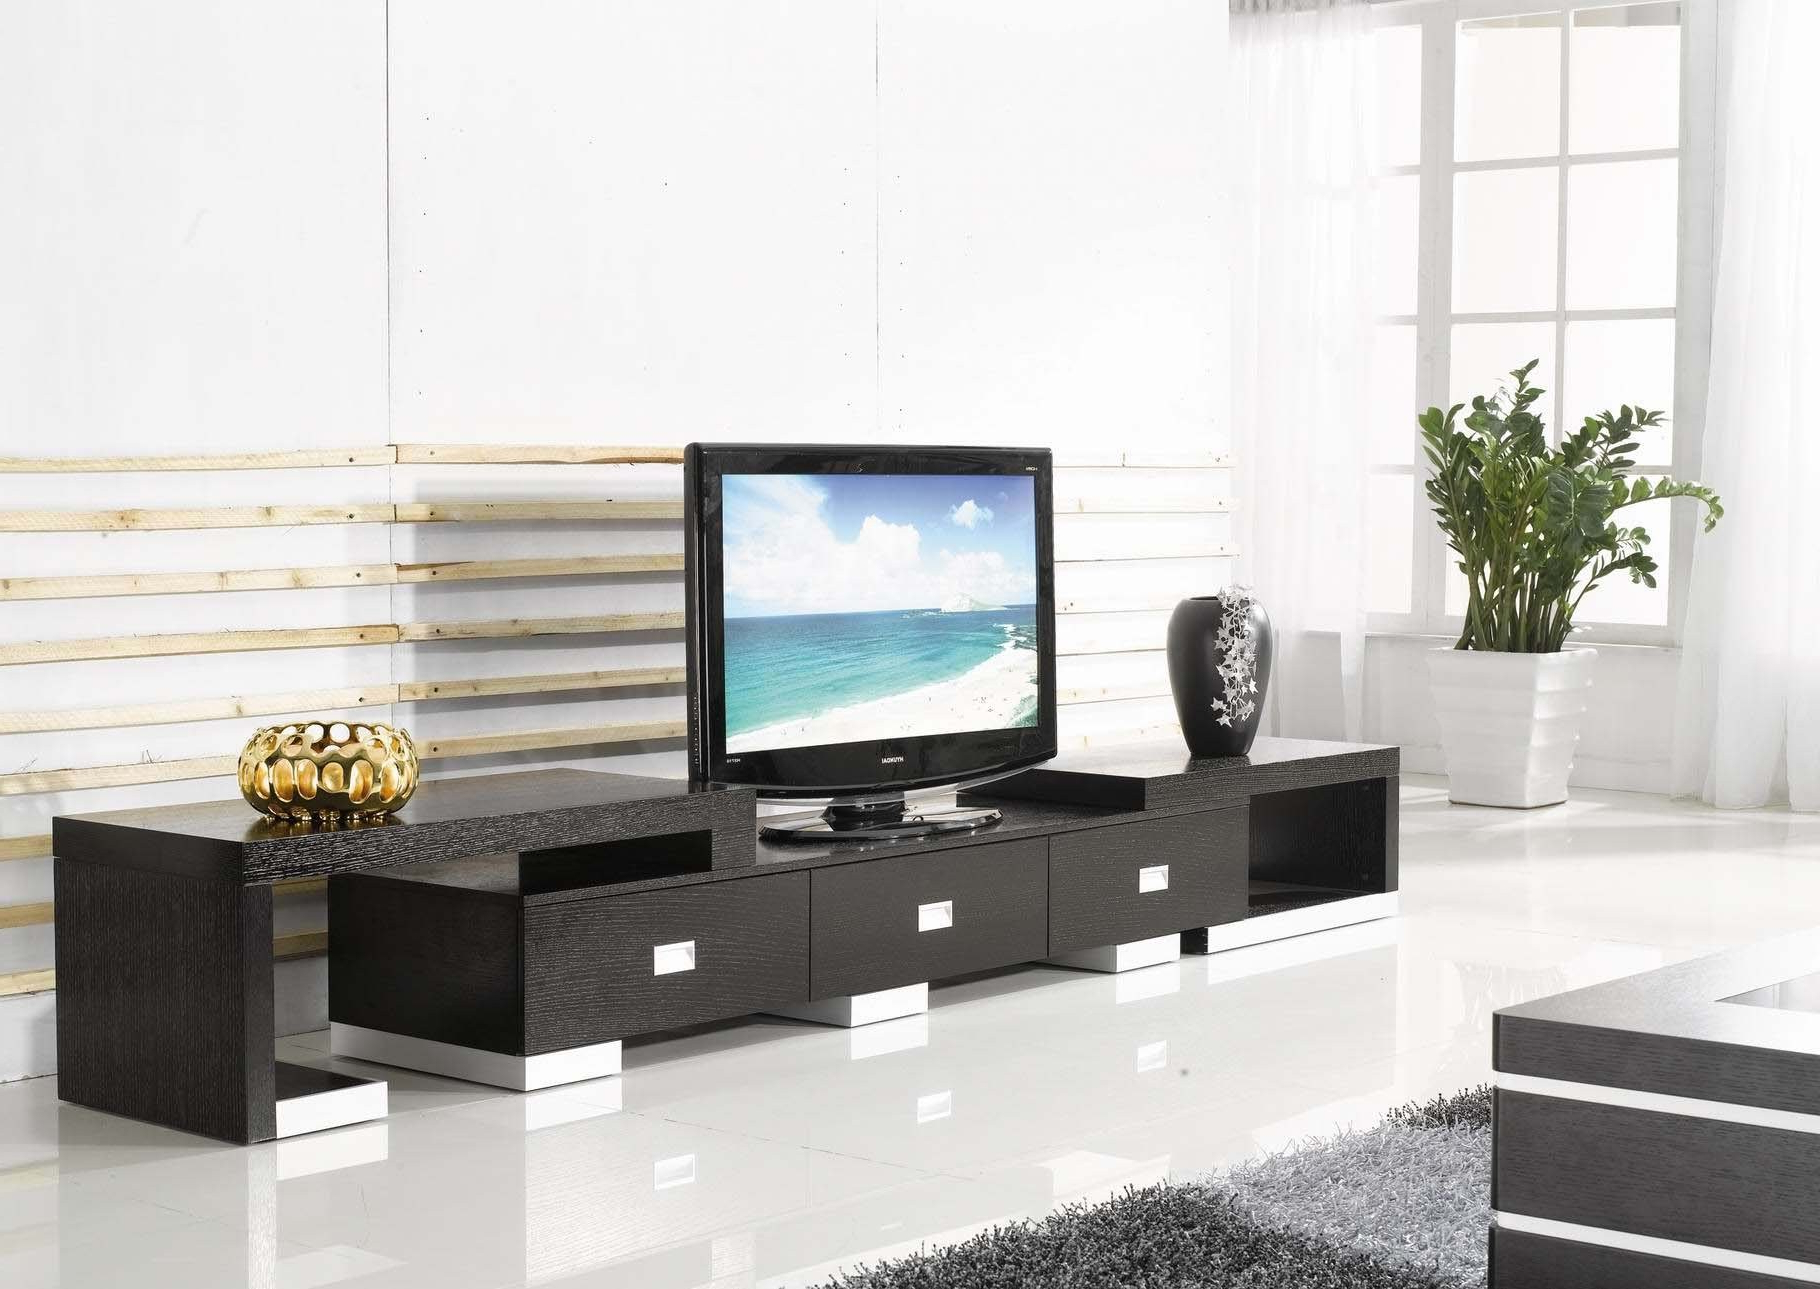 Big Tv Stands Furniture With Recent Small Tv Stands For Bedroom Big Tv Stand Versus Small Living Room Tv (View 9 of 20)